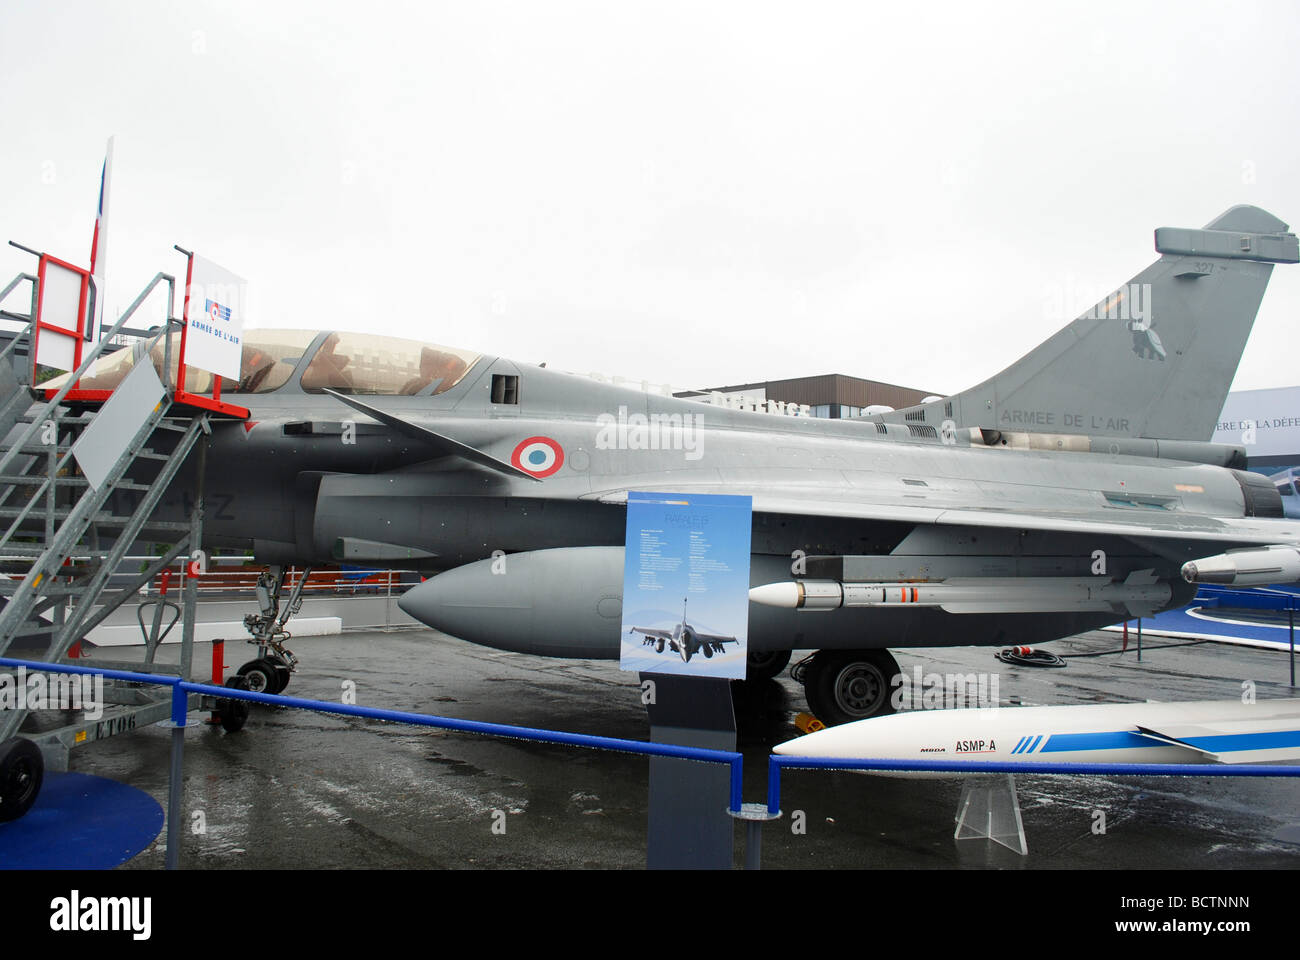 The Dassault Rafale B a French twin engined delta wing highly agile multi role fighter aircraft designed and built - Stock Image